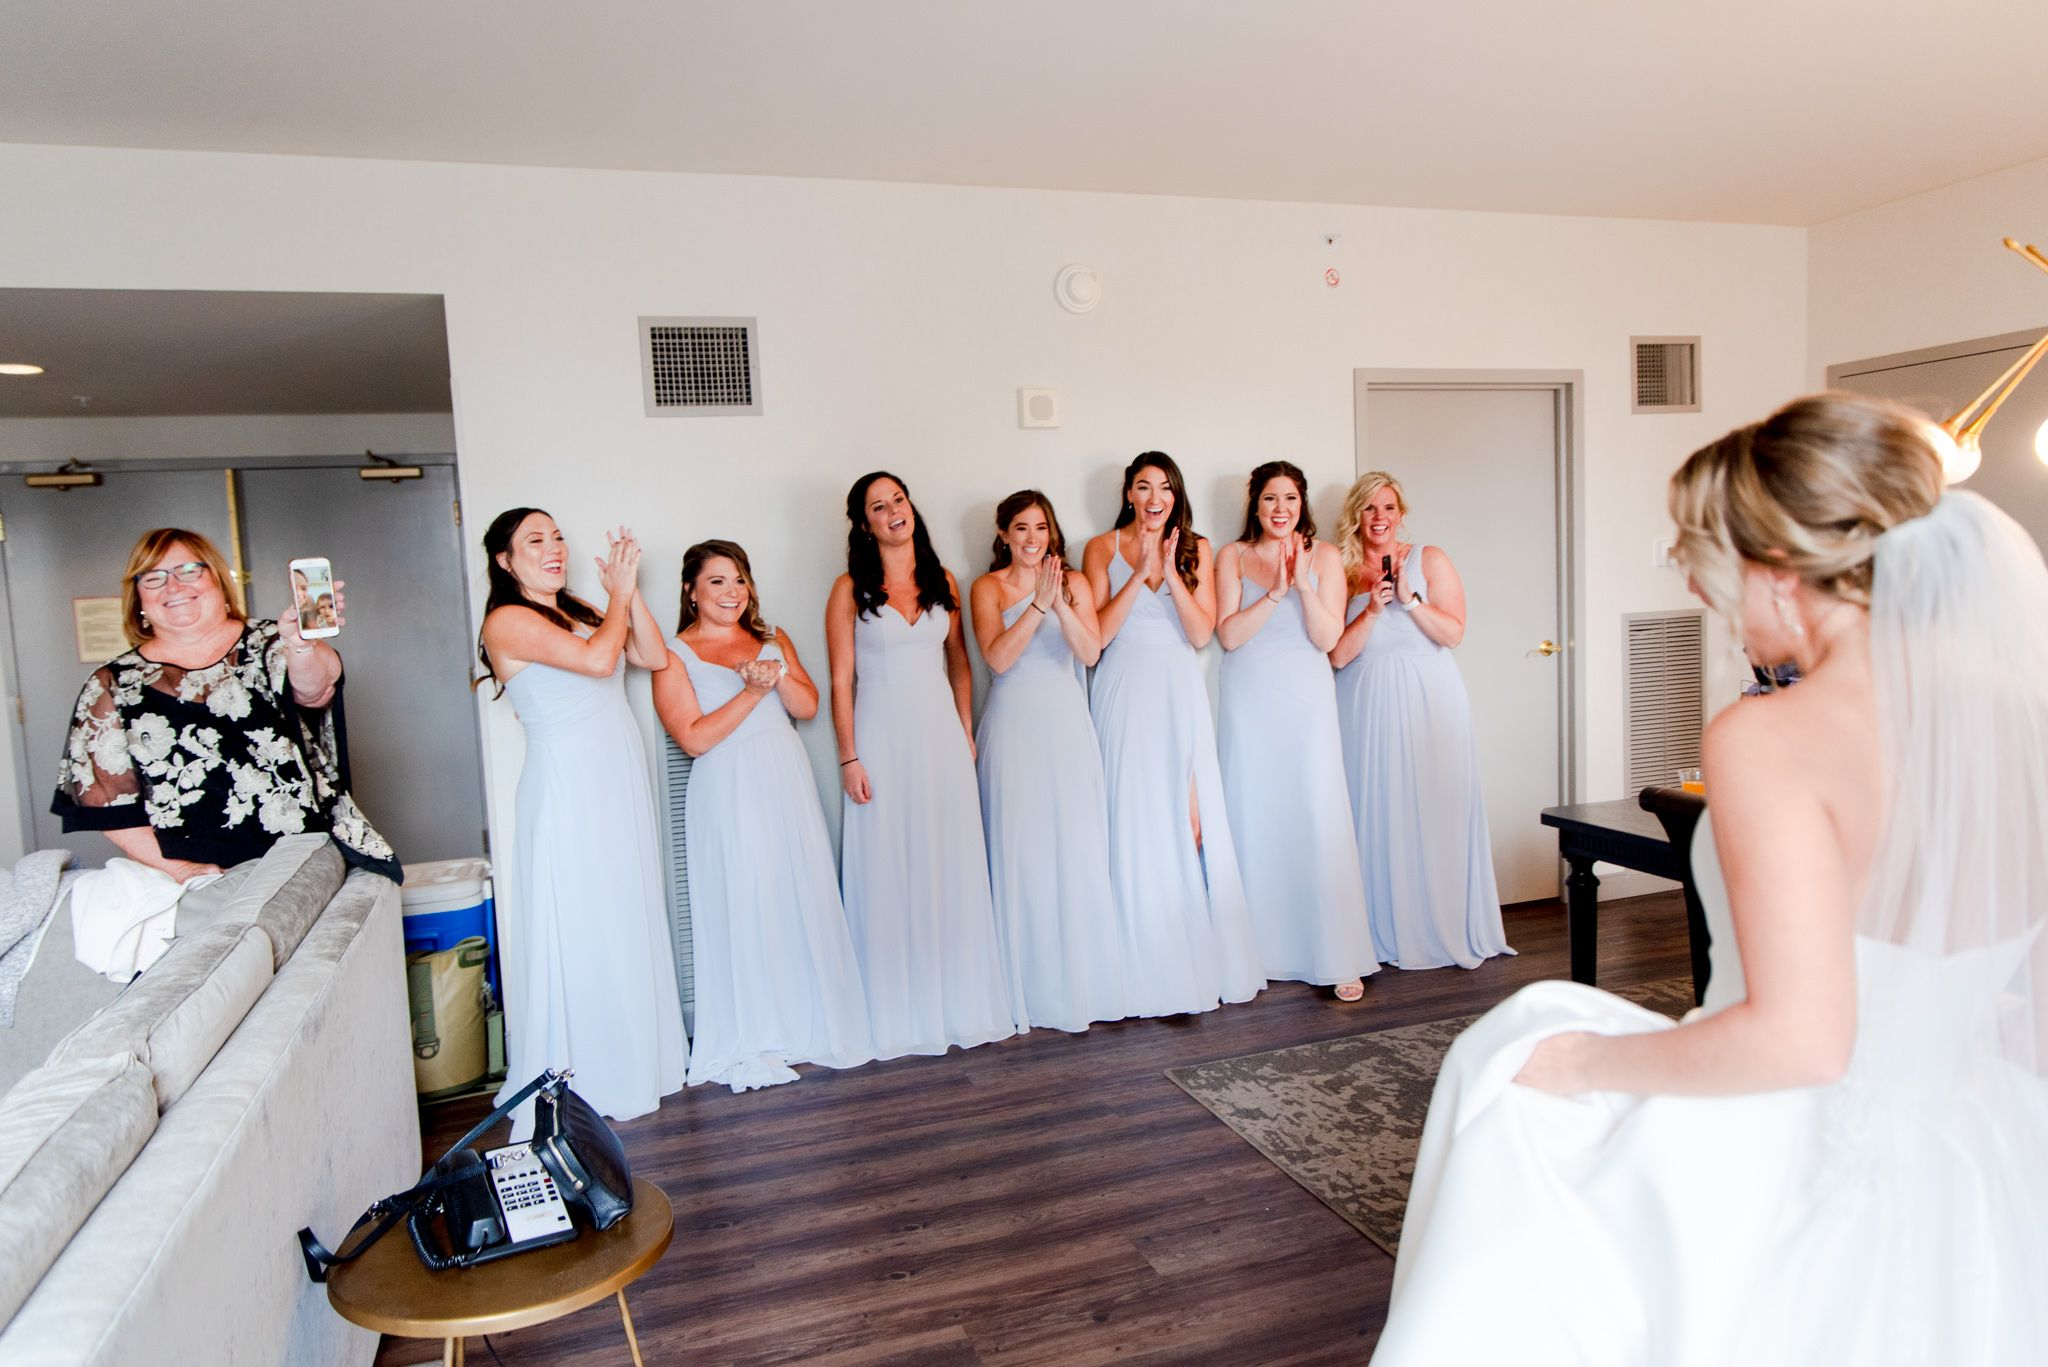 7 bridesmaids in light blue dresses smiling and clapping after seeing the bride, while mom smiles and holds up phone